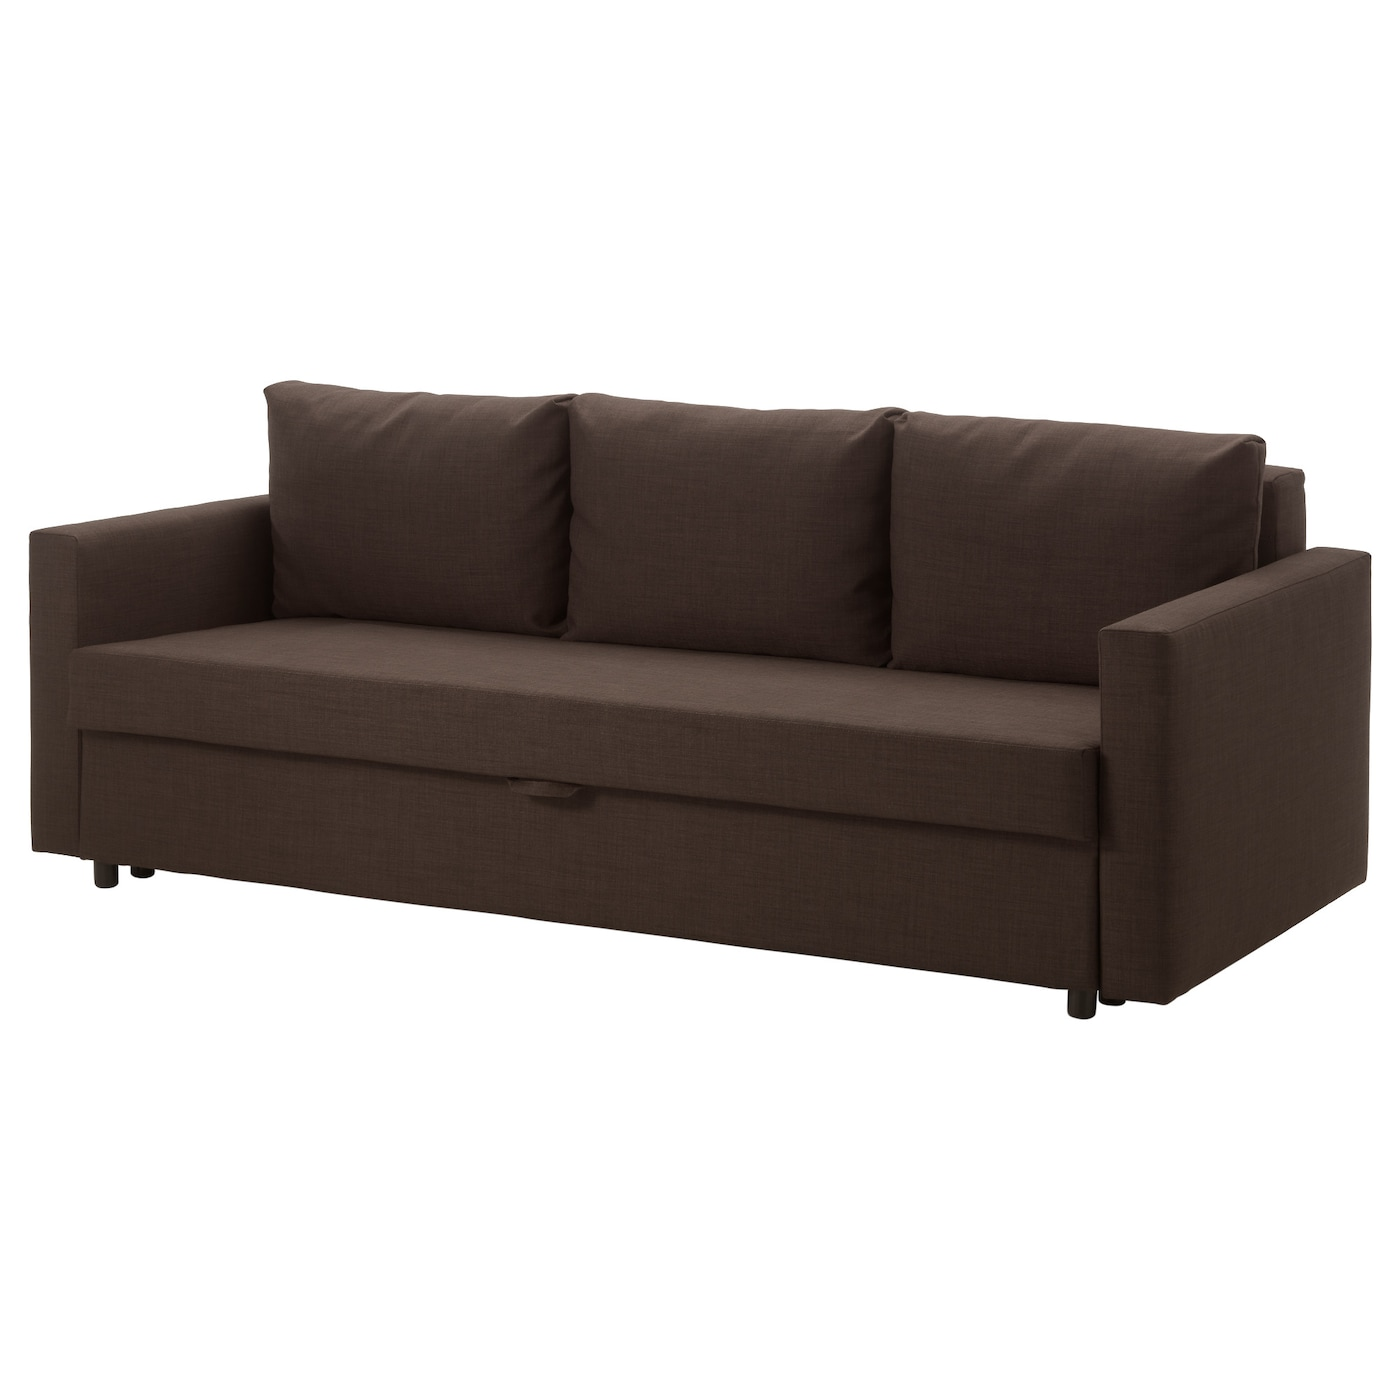 FRIHETEN Three seat sofa bed Skiftebo brown IKEA : friheten three seat sofa bed skiftebo brown0325773pe523055s5 from www.ikea.com size 2000 x 2000 jpeg 254kB